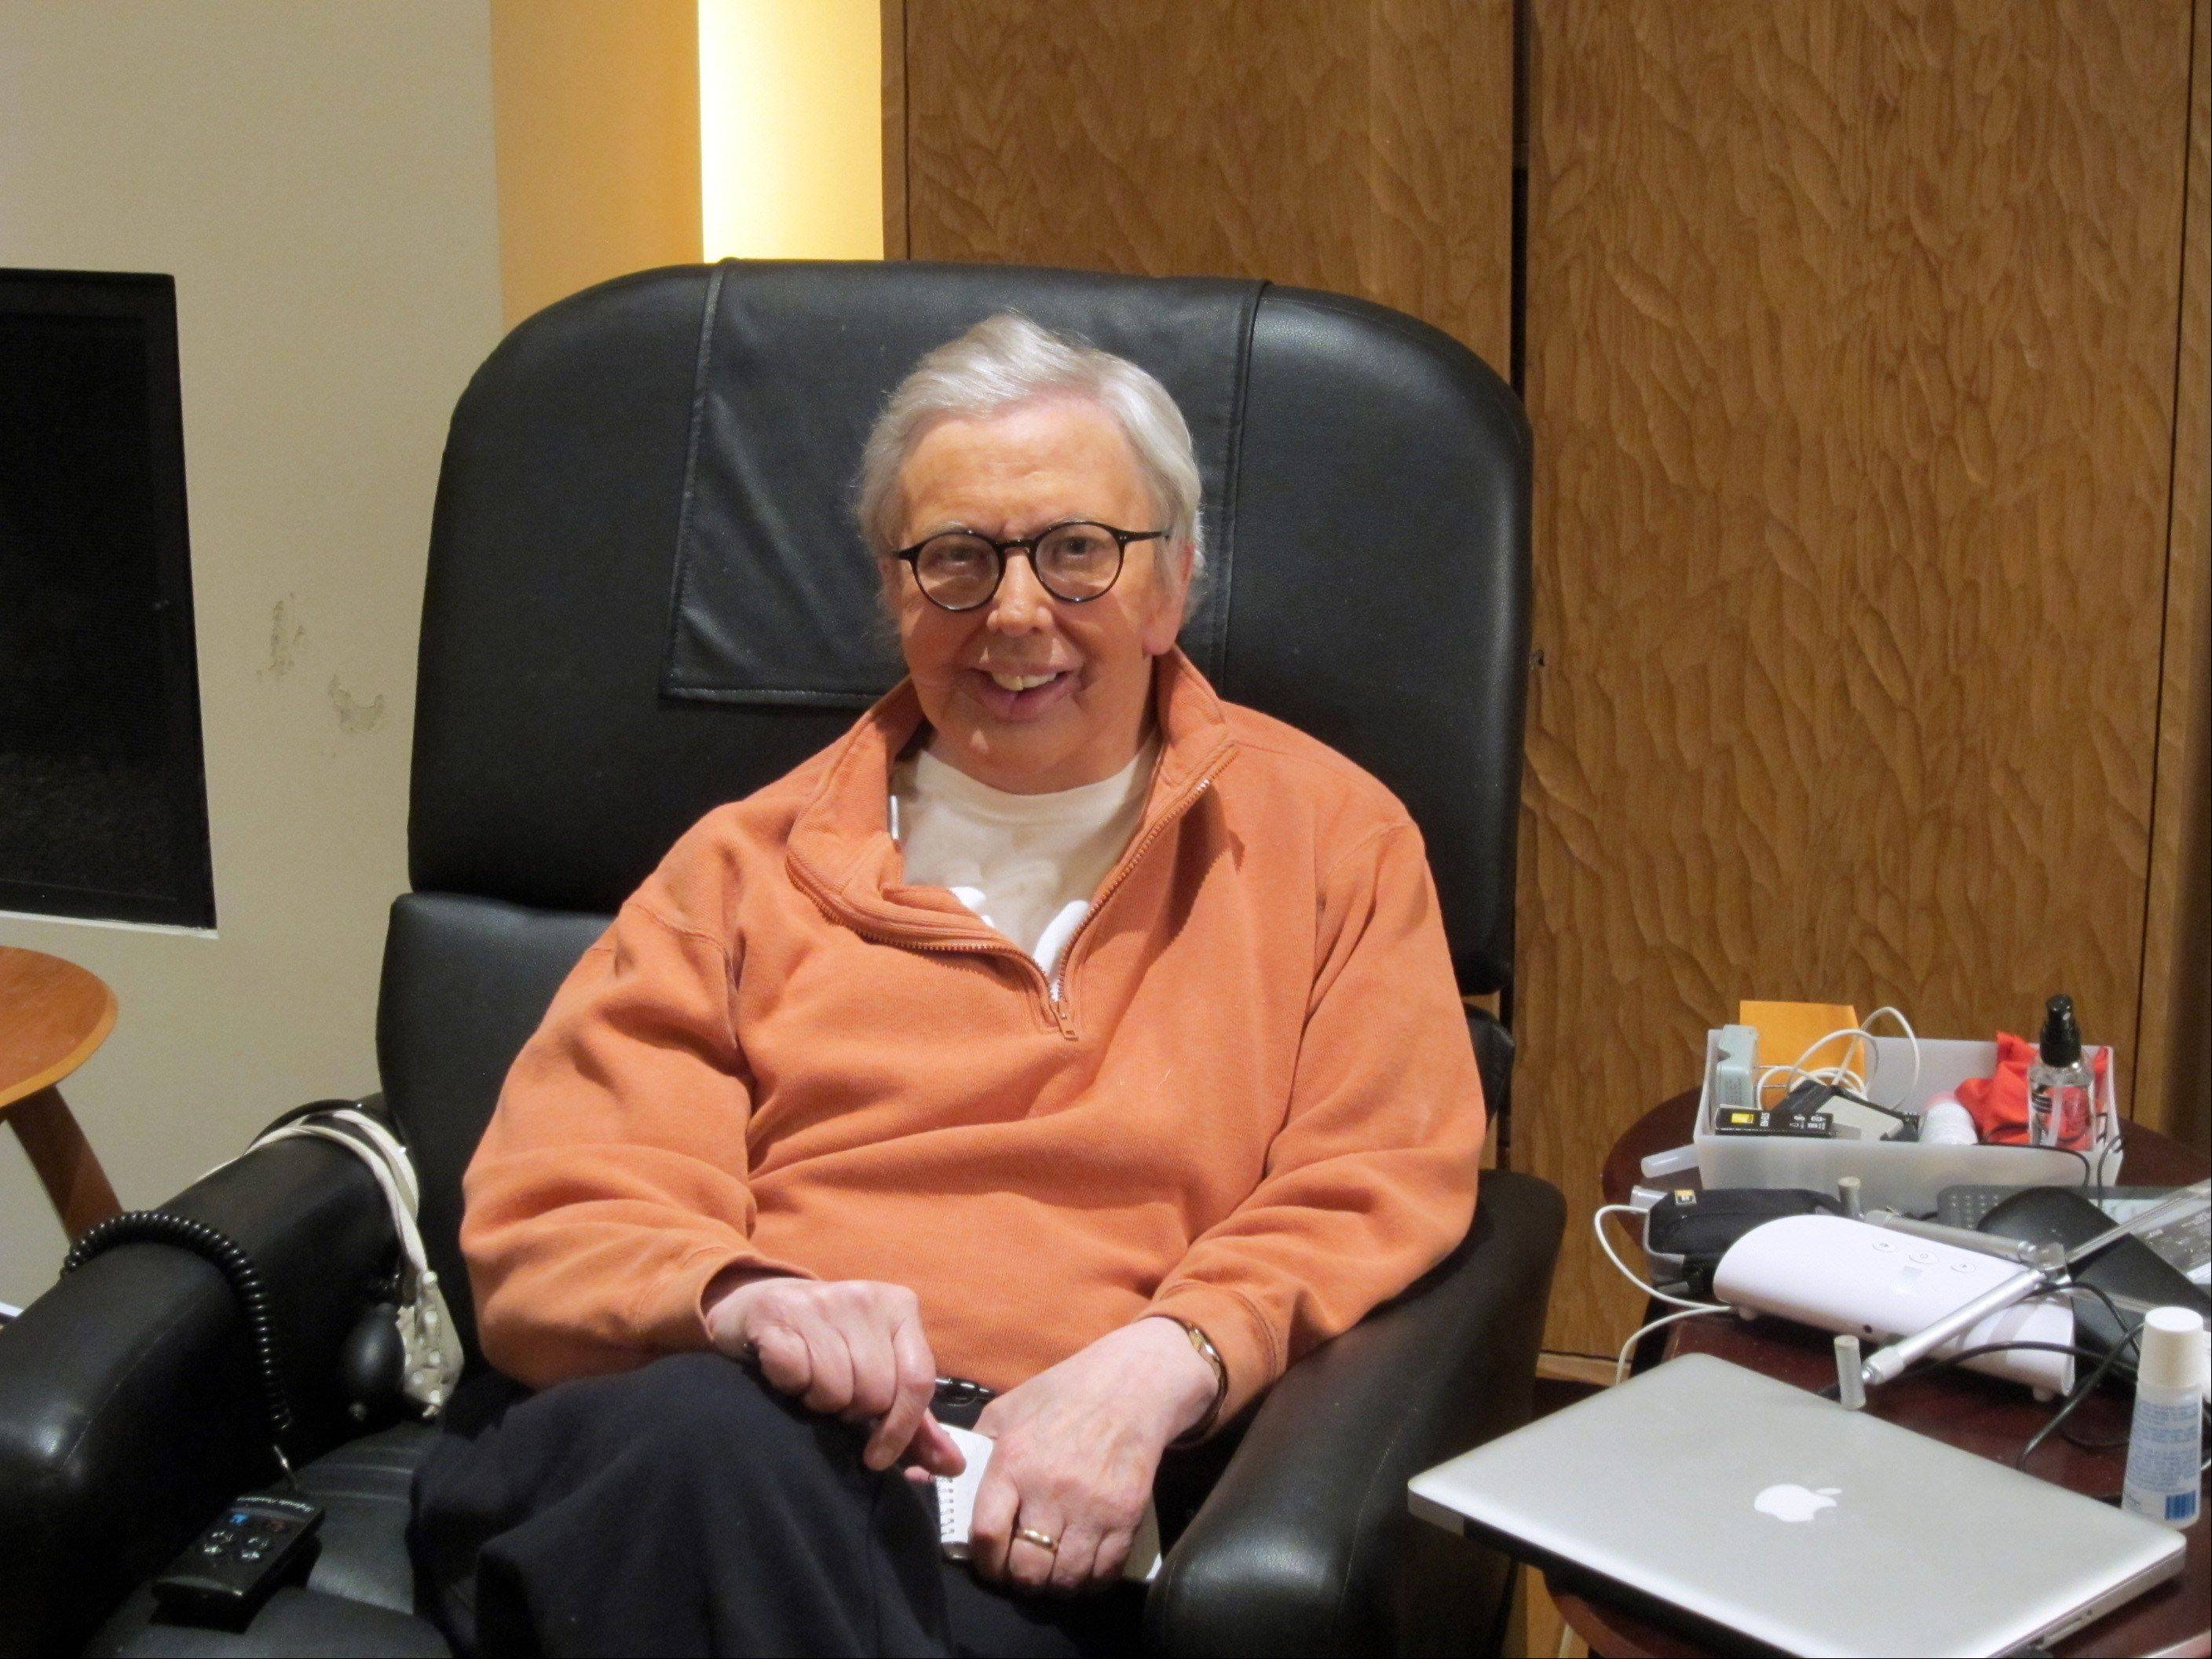 "This January, 2011, photo provided by Roger Ebert shows the famous film critic wearing a silicone prosthesis over his lower face and neck. Ebert said in his Jan. 19 blog that he will wear the prosthesis for the ""Roger's Office"" segment of the new television show ""Ebert Presents at the Movies,"" which debuts Friday, Jan. 21, 2011. Ebert, unable to speak since ."